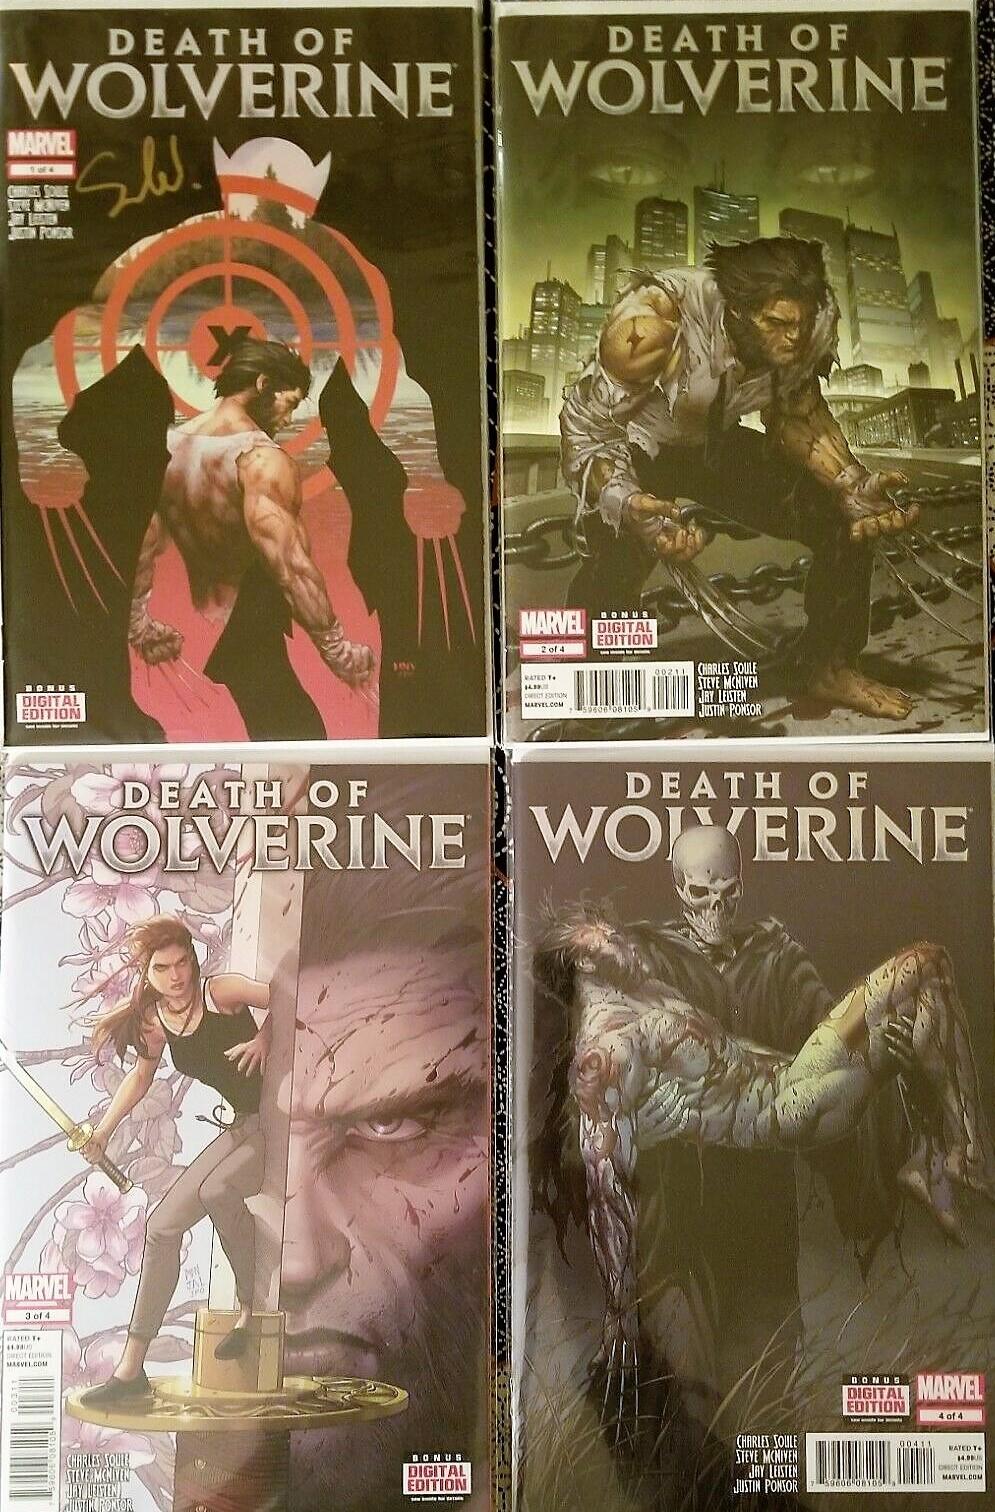 DEATH OF WOLVERINE #1-4 COMPLETE FOIL COVER SET